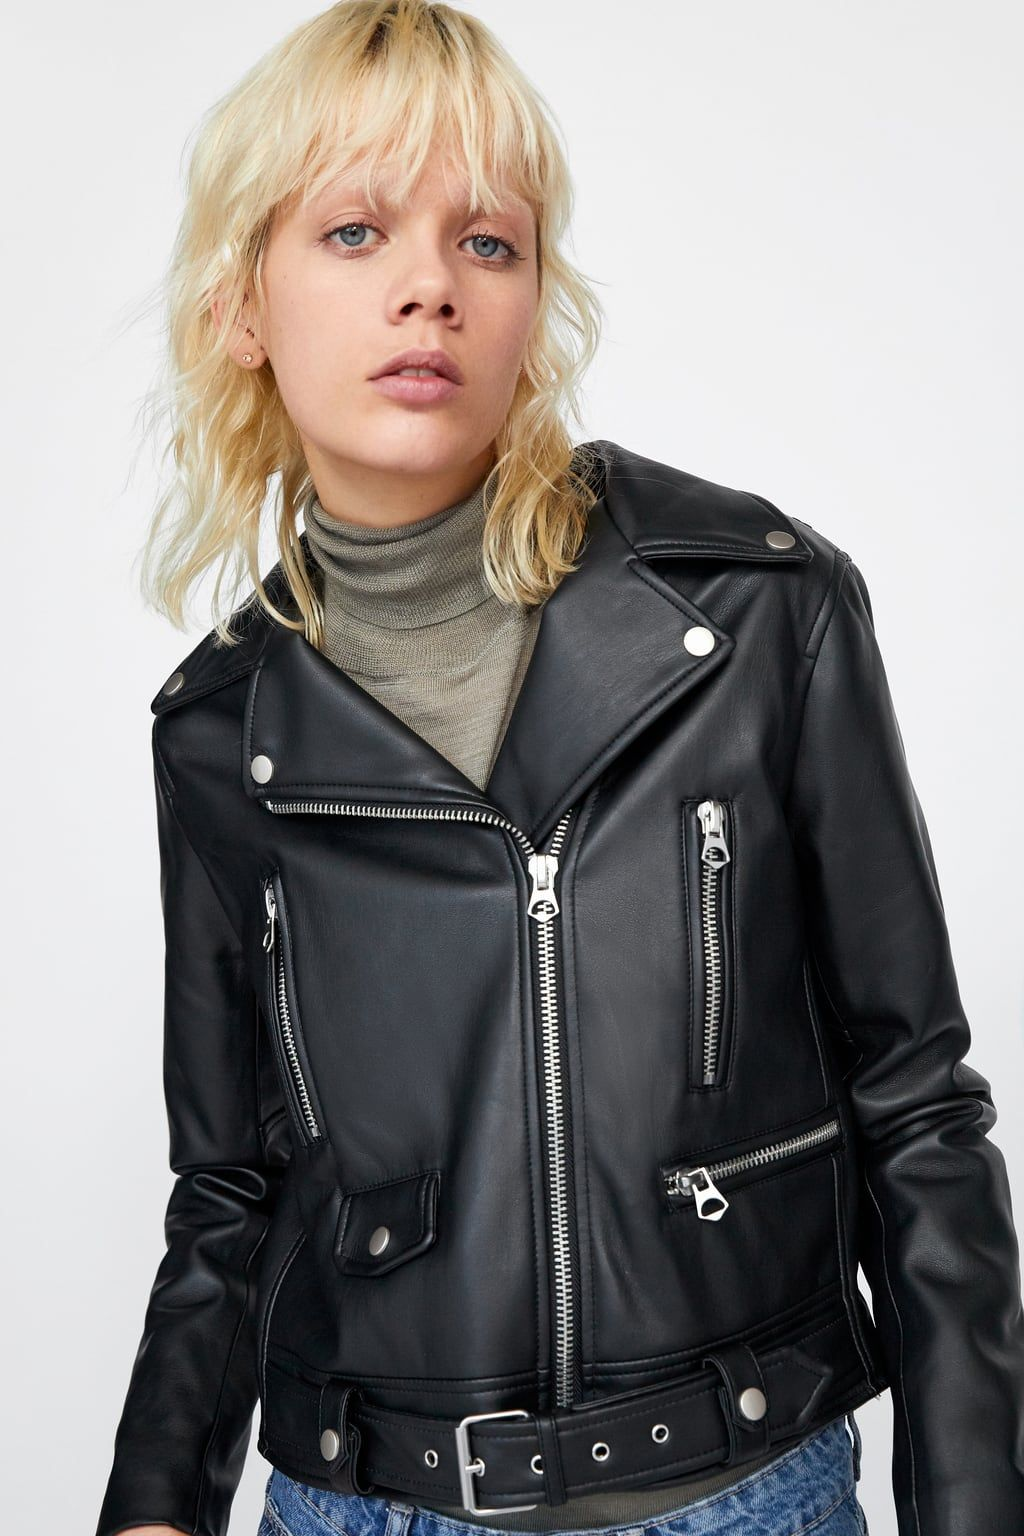 Faux leather jacket with zips Jackets, Zipper jacket